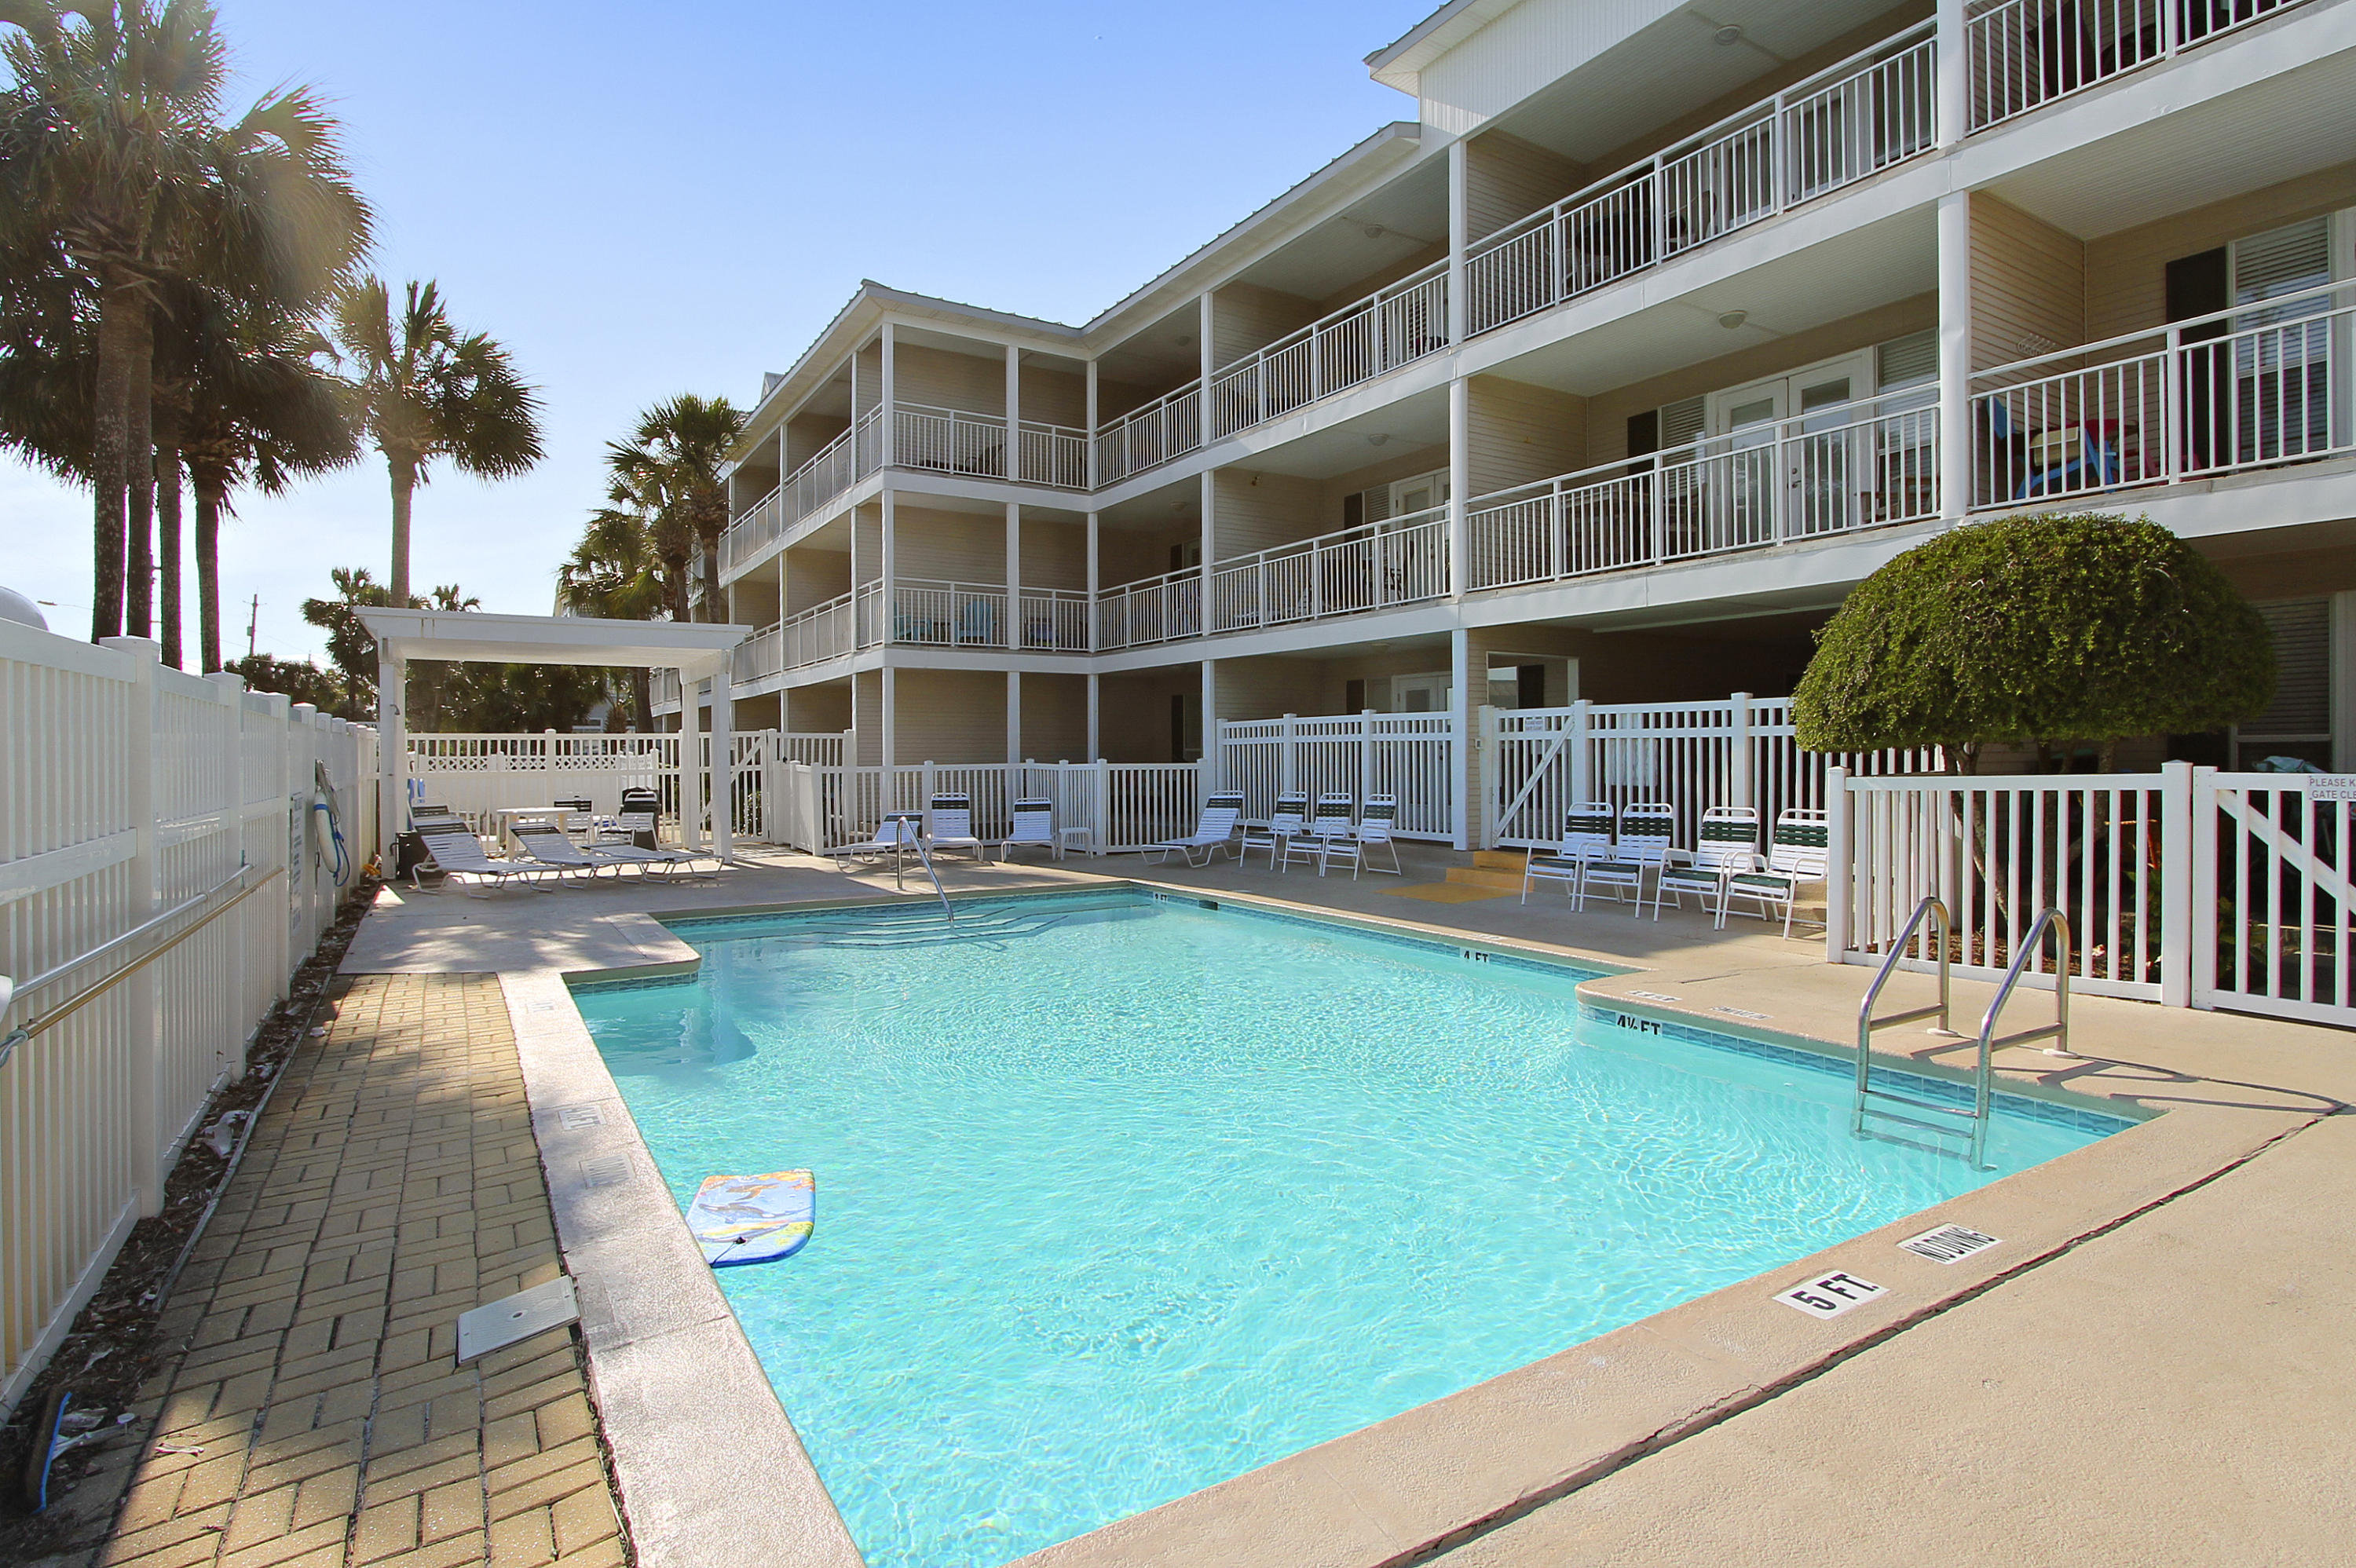 Property Description Welcome To Aquasplash At Grand Caribbean West This